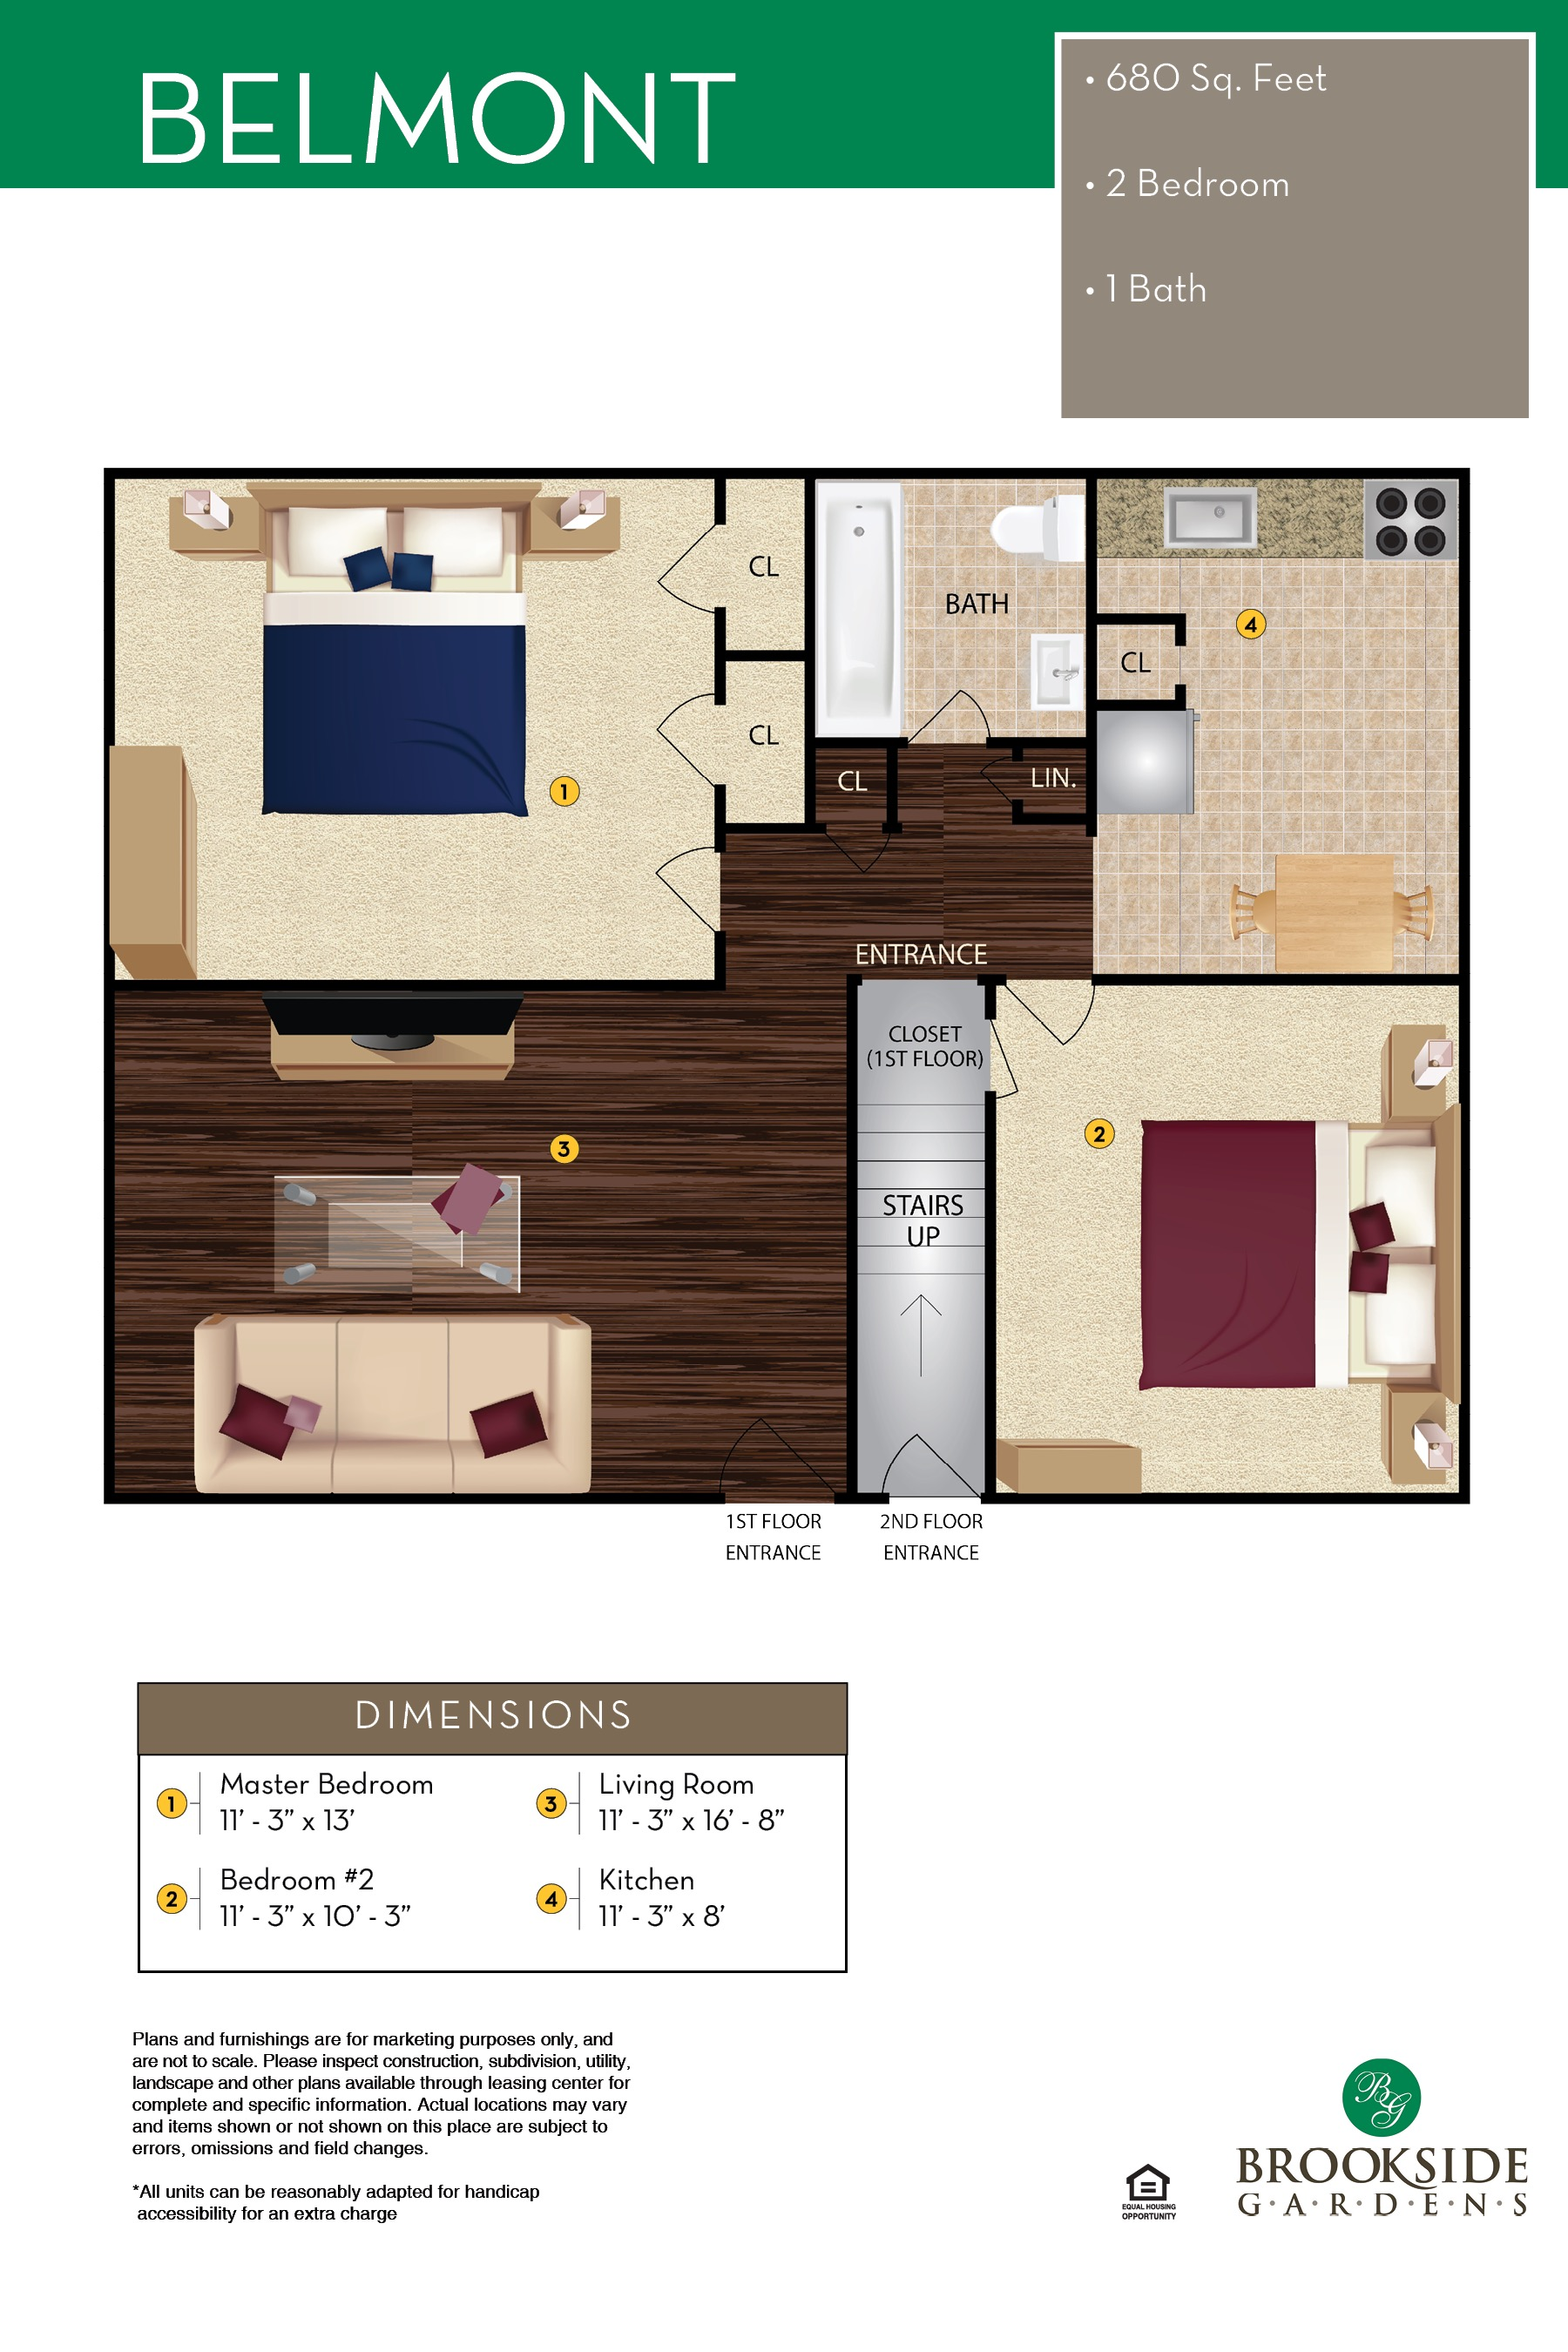 Brookside Gardens Belmont Floor Plans